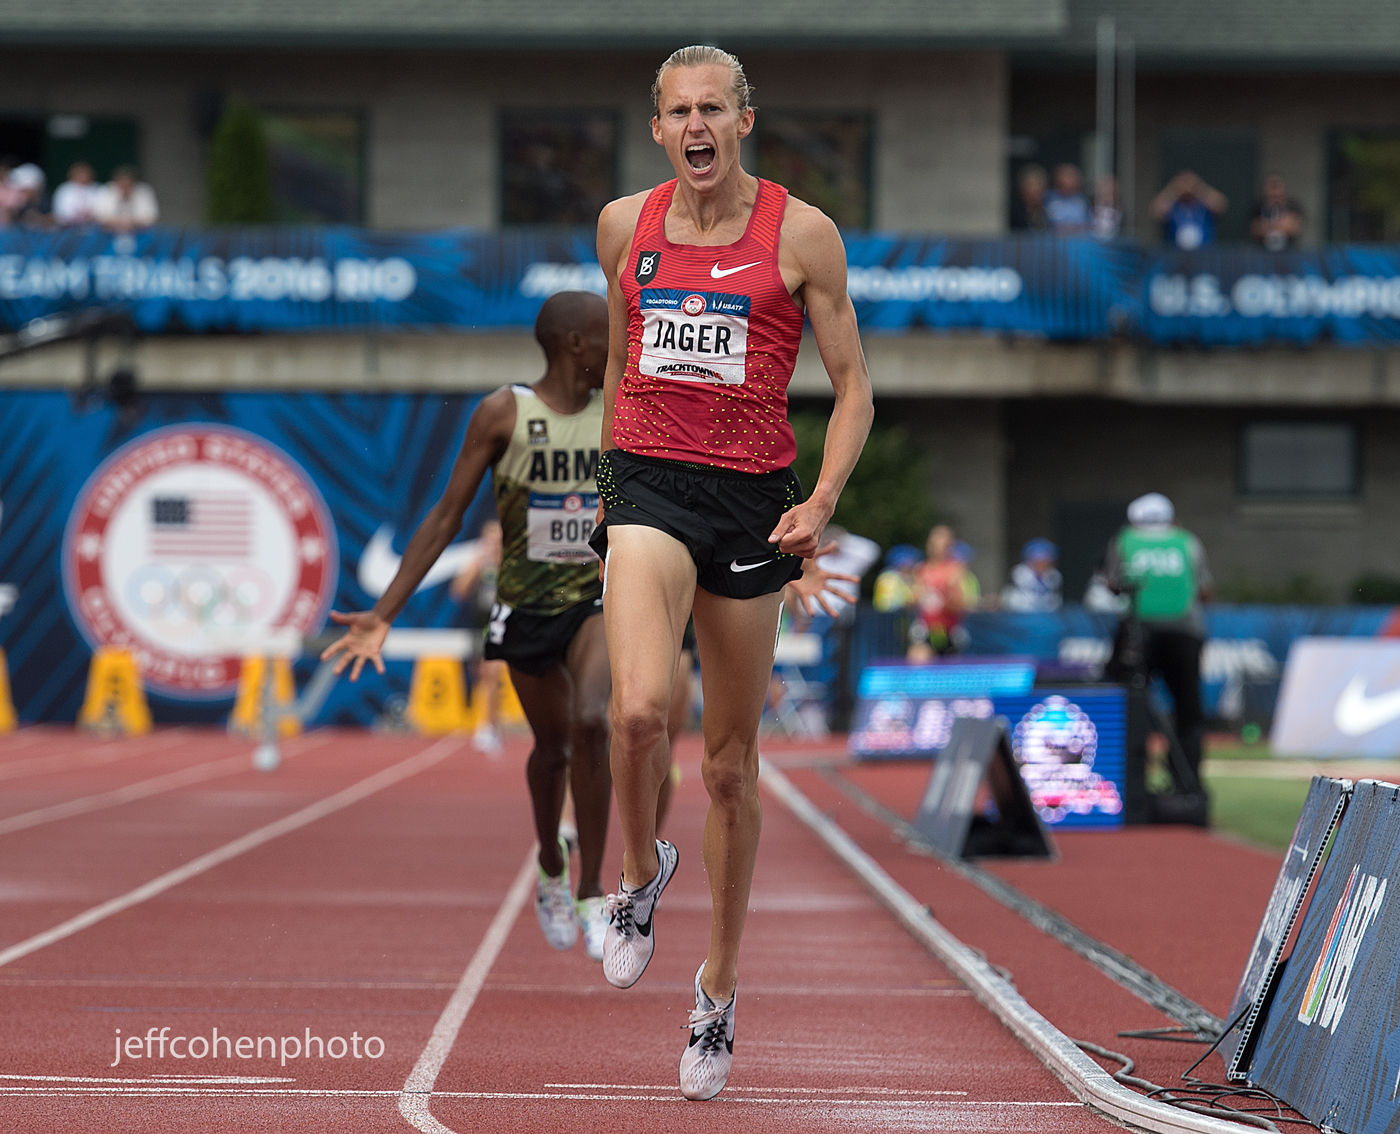 1r2016_oly_trials_day_7_evan_jager_win_steeple_jeff_cohen_photo_23227_web.jpg